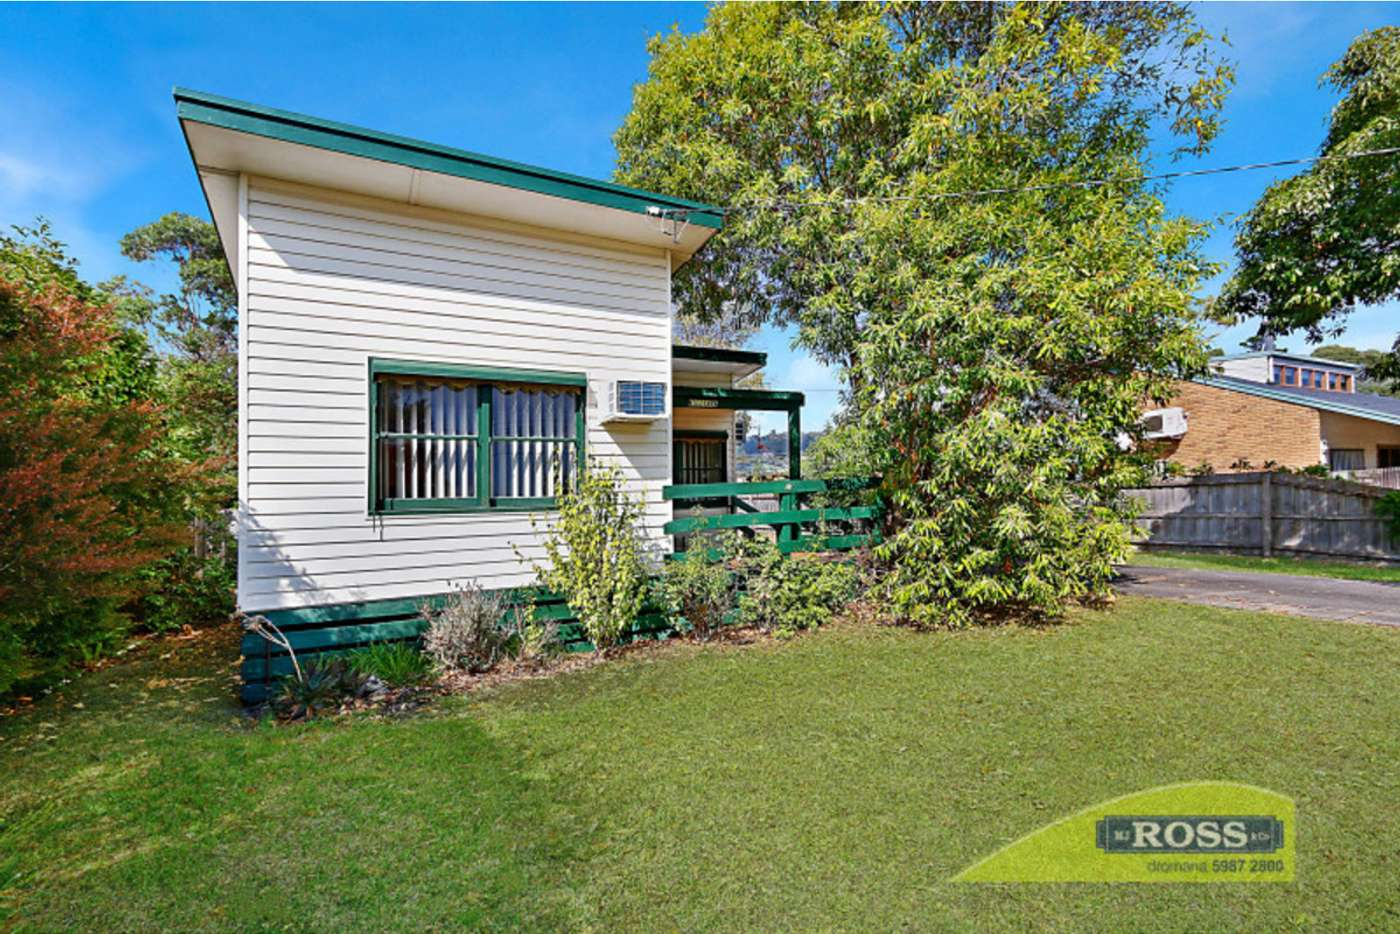 Main view of Homely house listing, 21 Elizabeth Avenue, Dromana VIC 3936